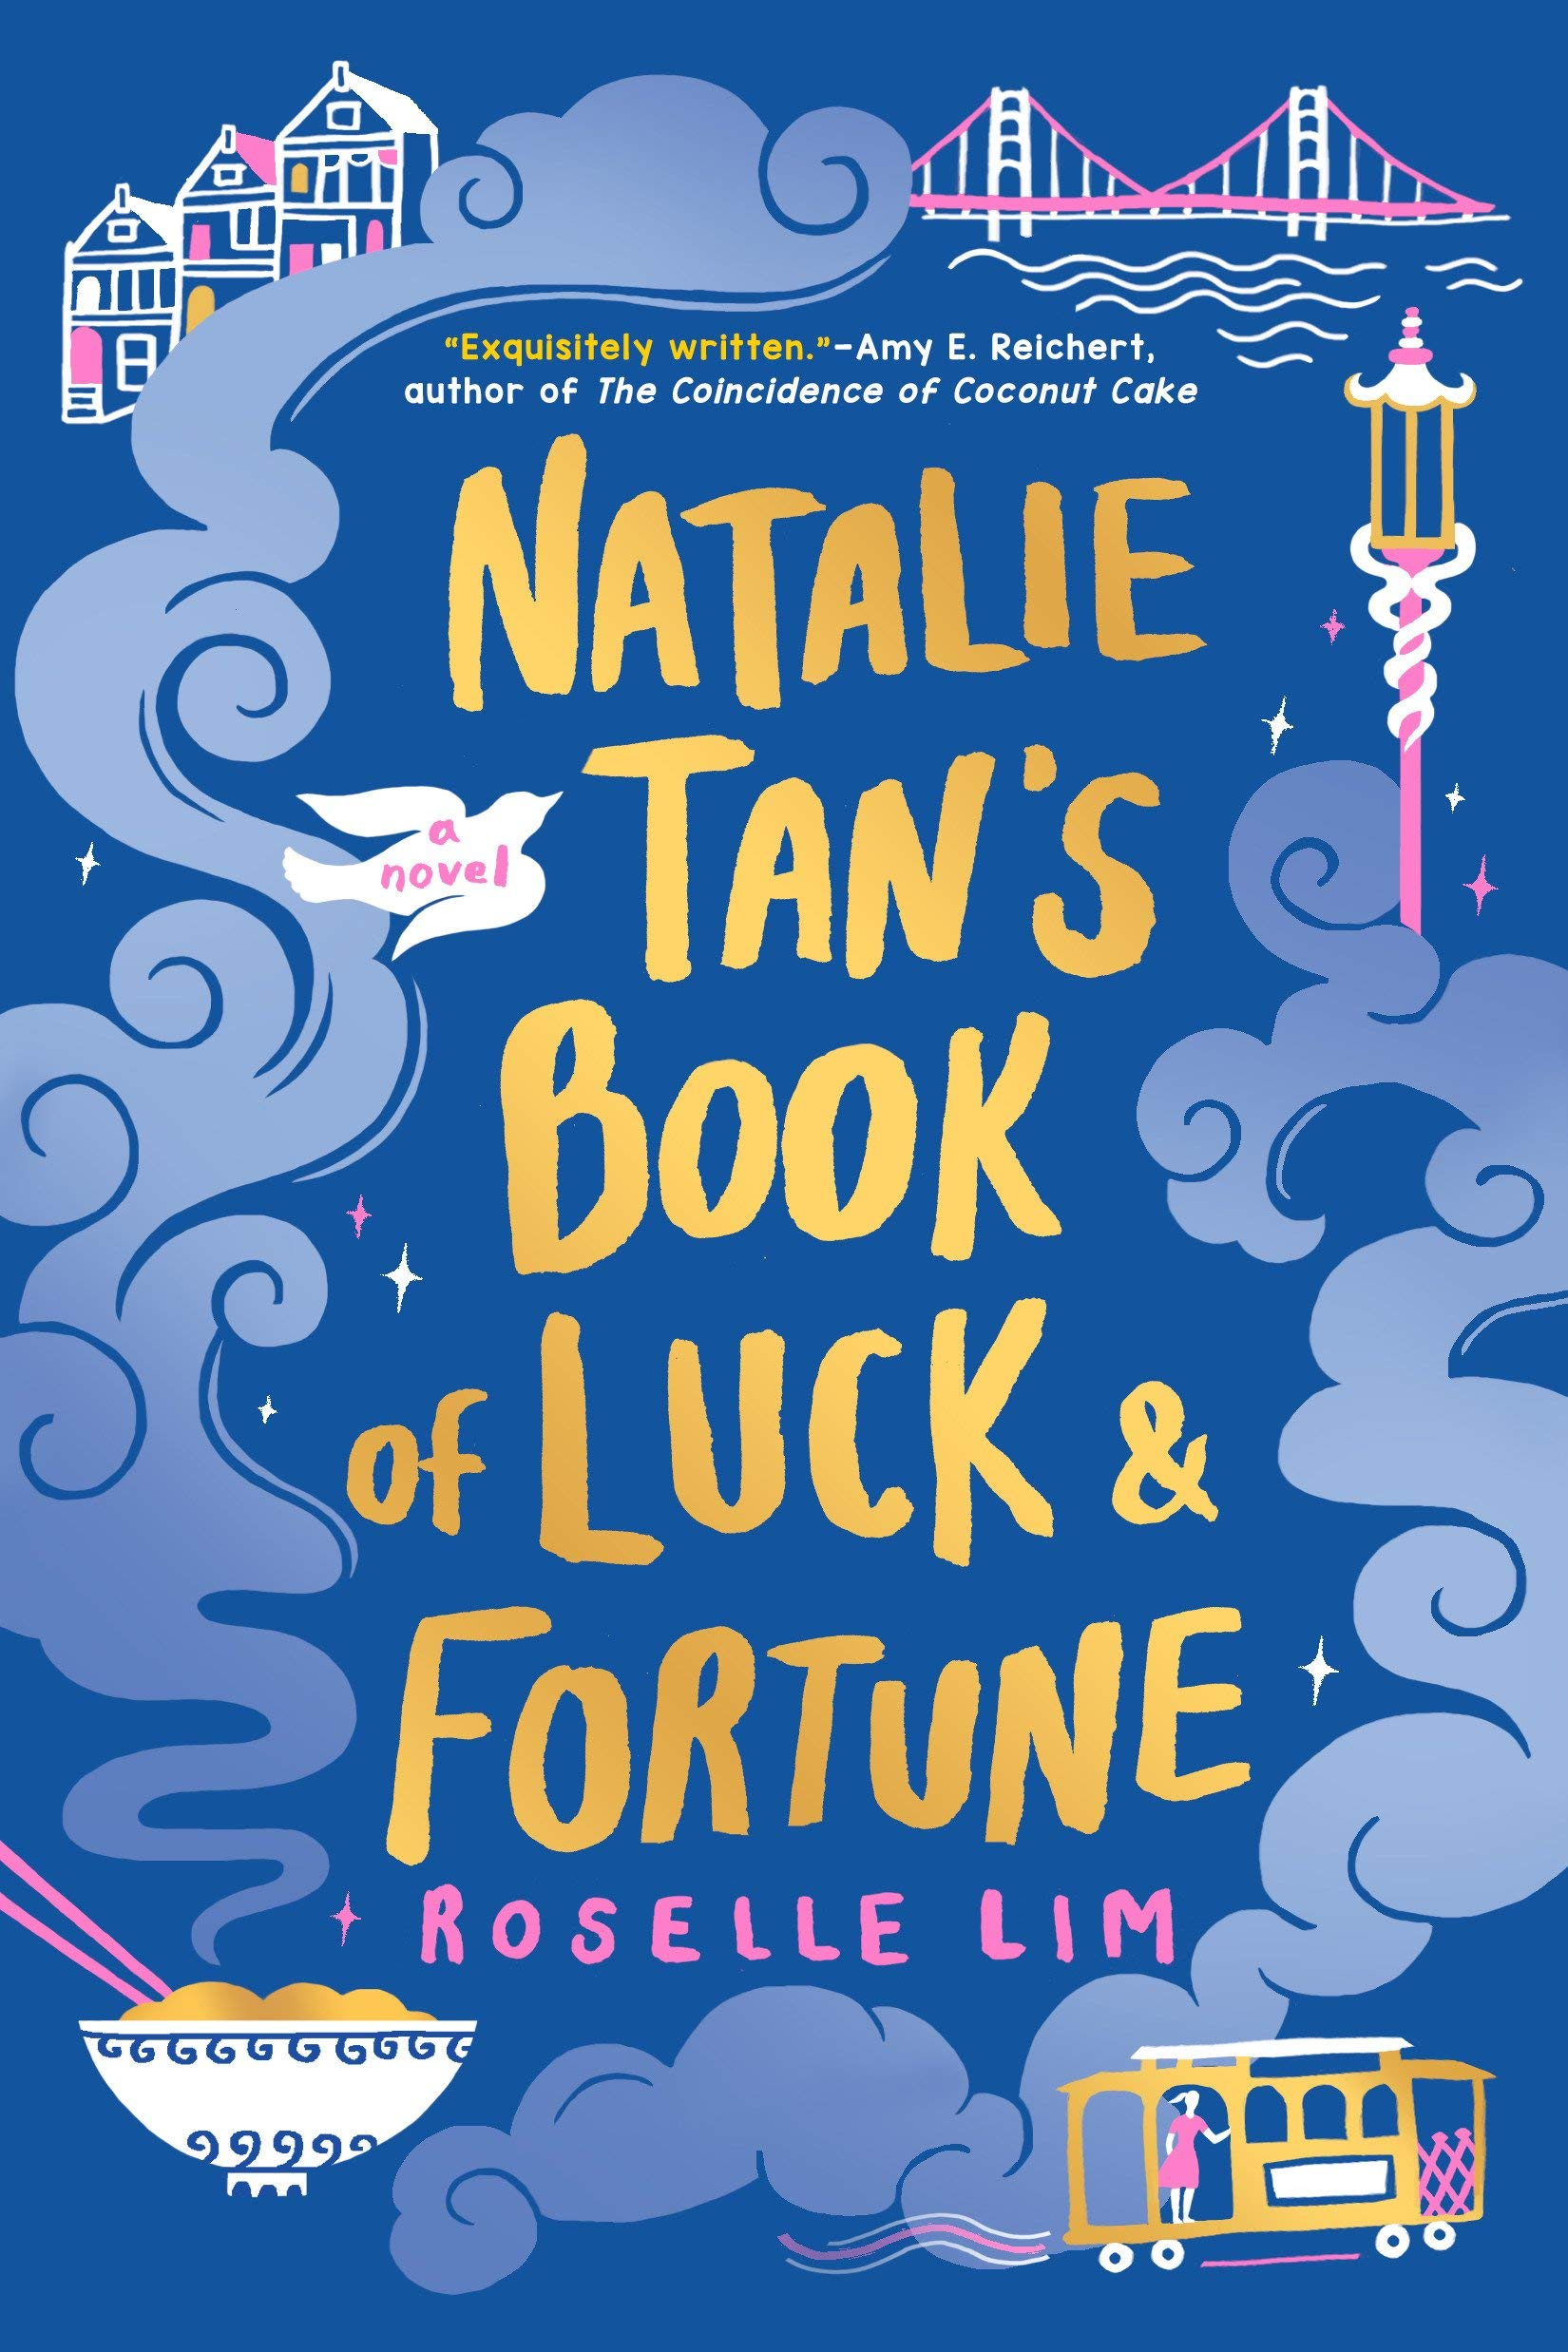 Image result for natalie tan's book of luck and fortune by roselle lim